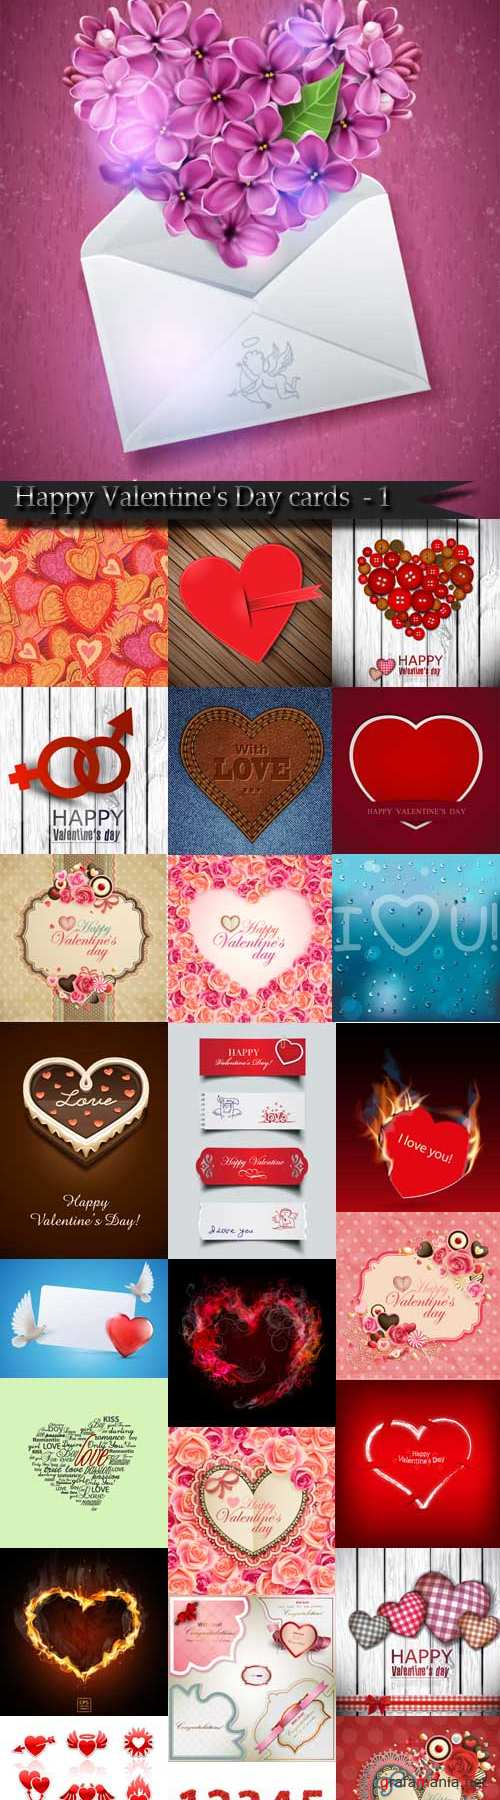 Happy Valentine's Day cards and backgrounds - 1